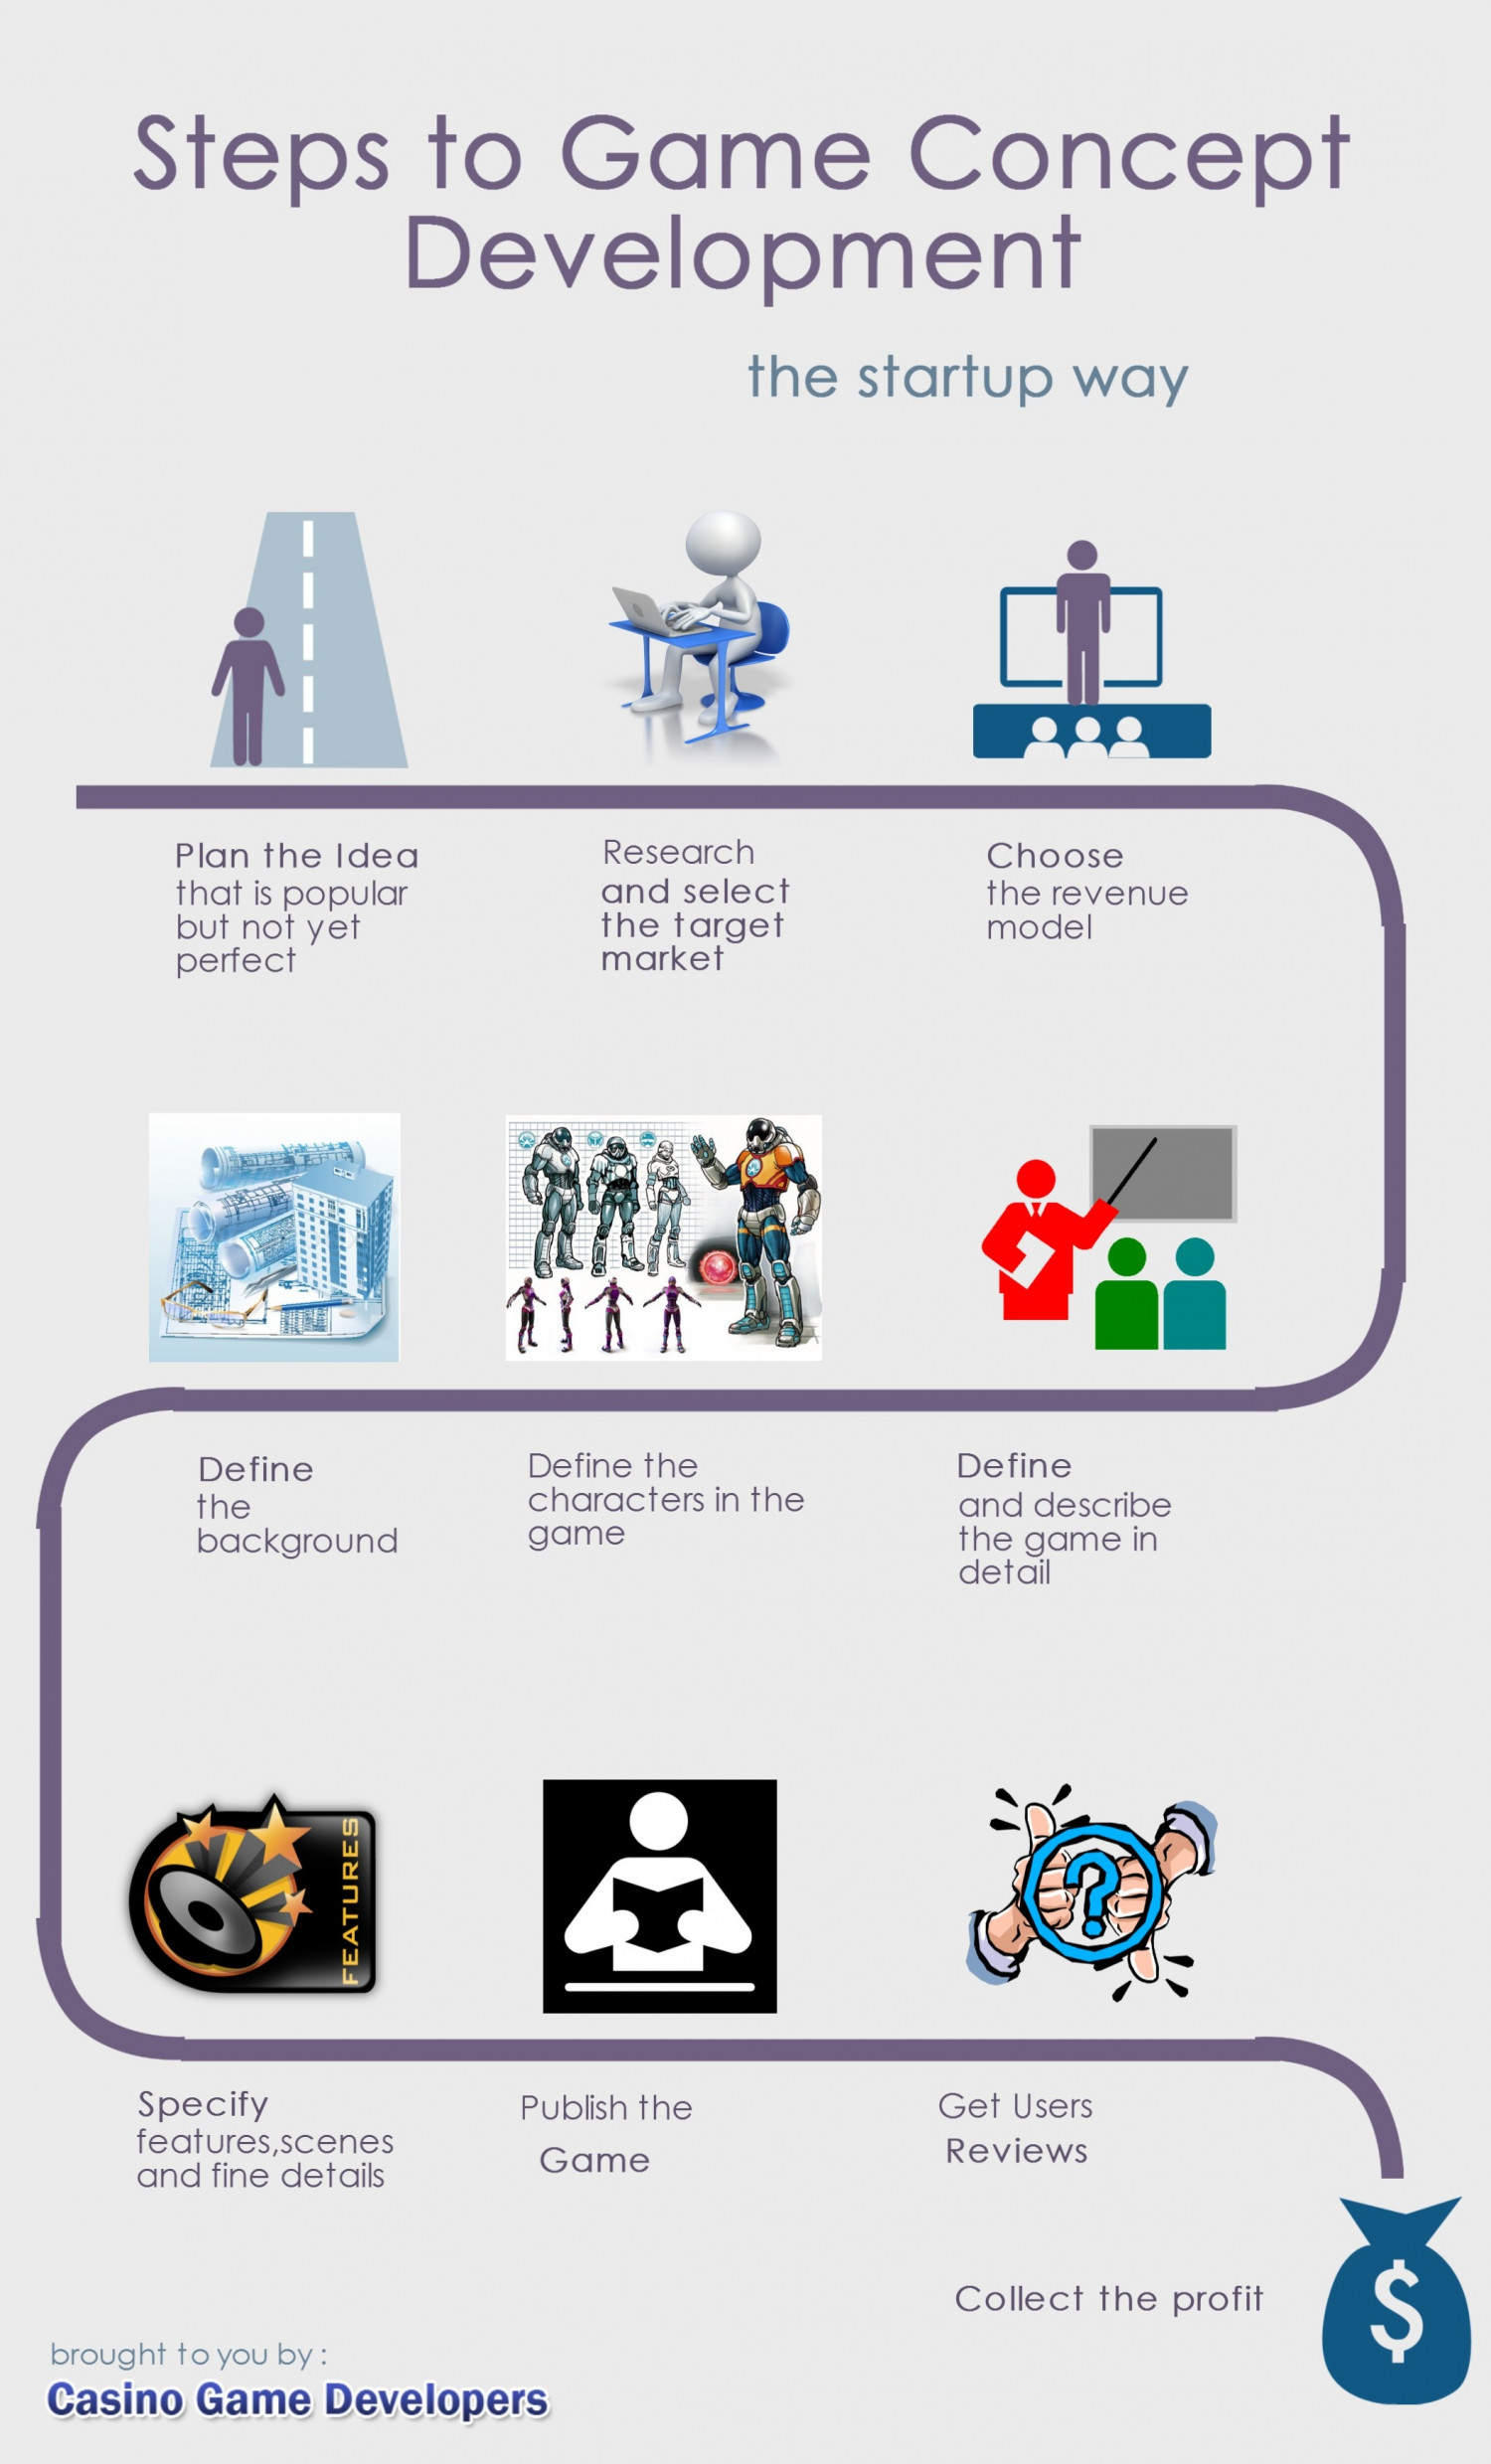 Steps For Game Concept Development Visually